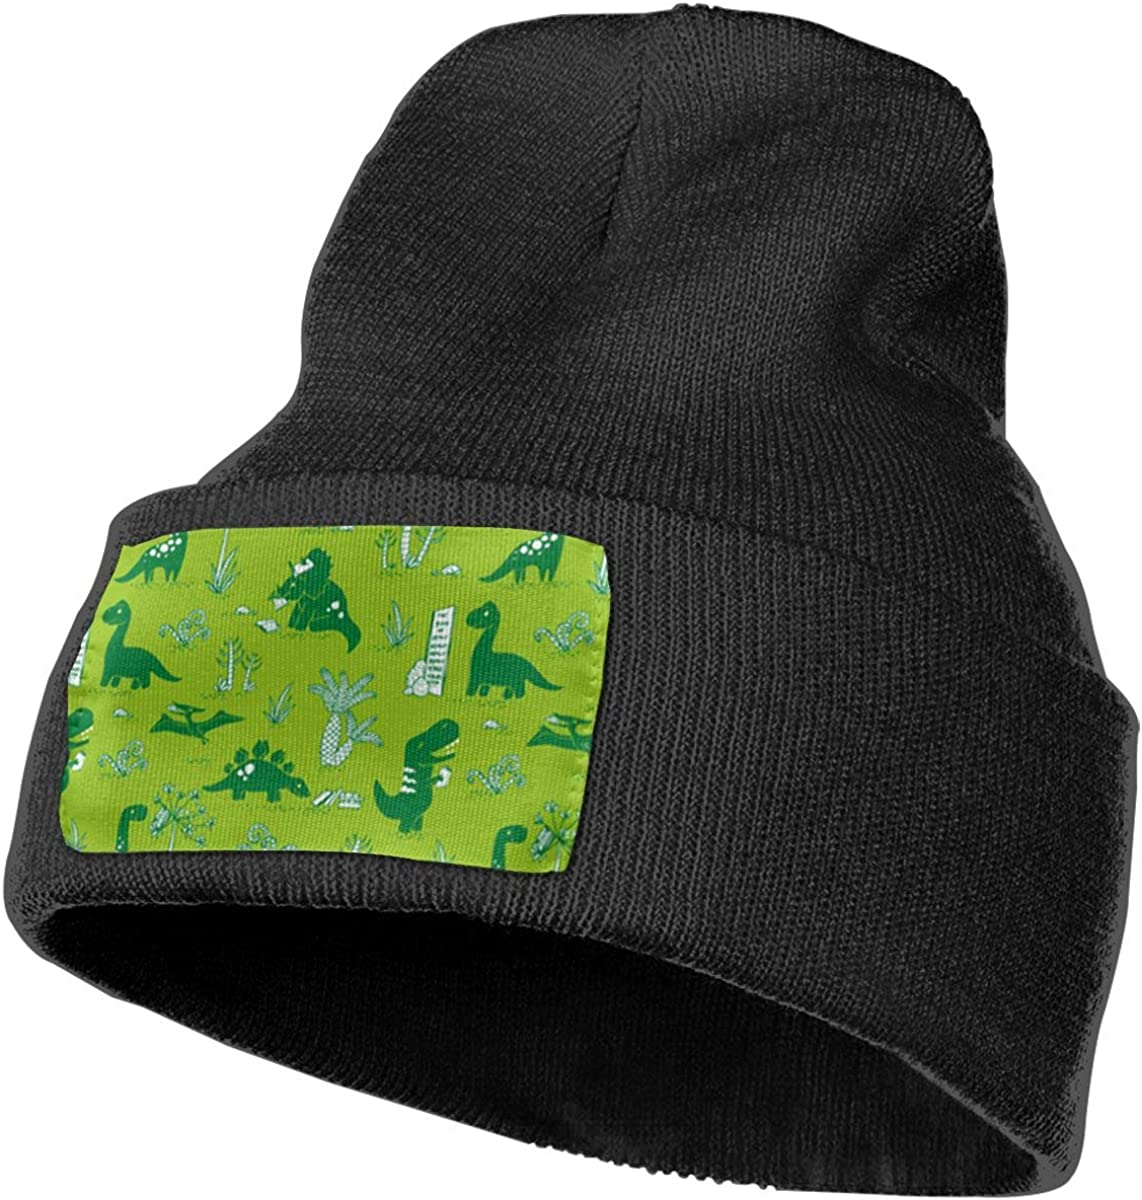 100/% Acrylic Acid Mas Beanie Hat Ruin Grumpy Dinosaur Fashion Knitting Hat for Men Women